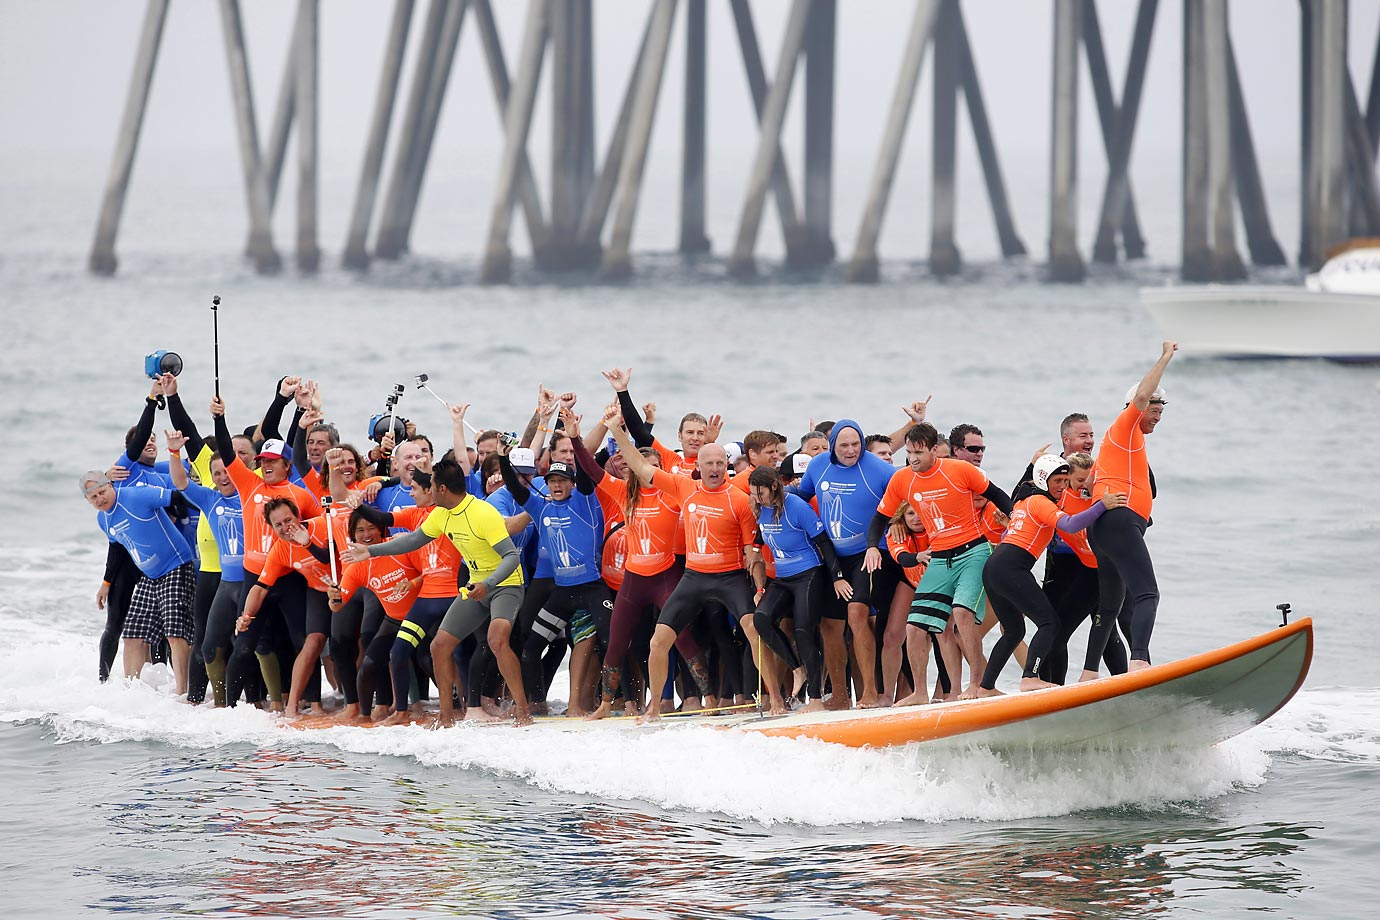 Sixty-six surfers from around the world ride a custom-built, 42-foot, 1,300-pound surfboard for 12 seconds to break the Guinness World Record in Huntington Beach, Calif.